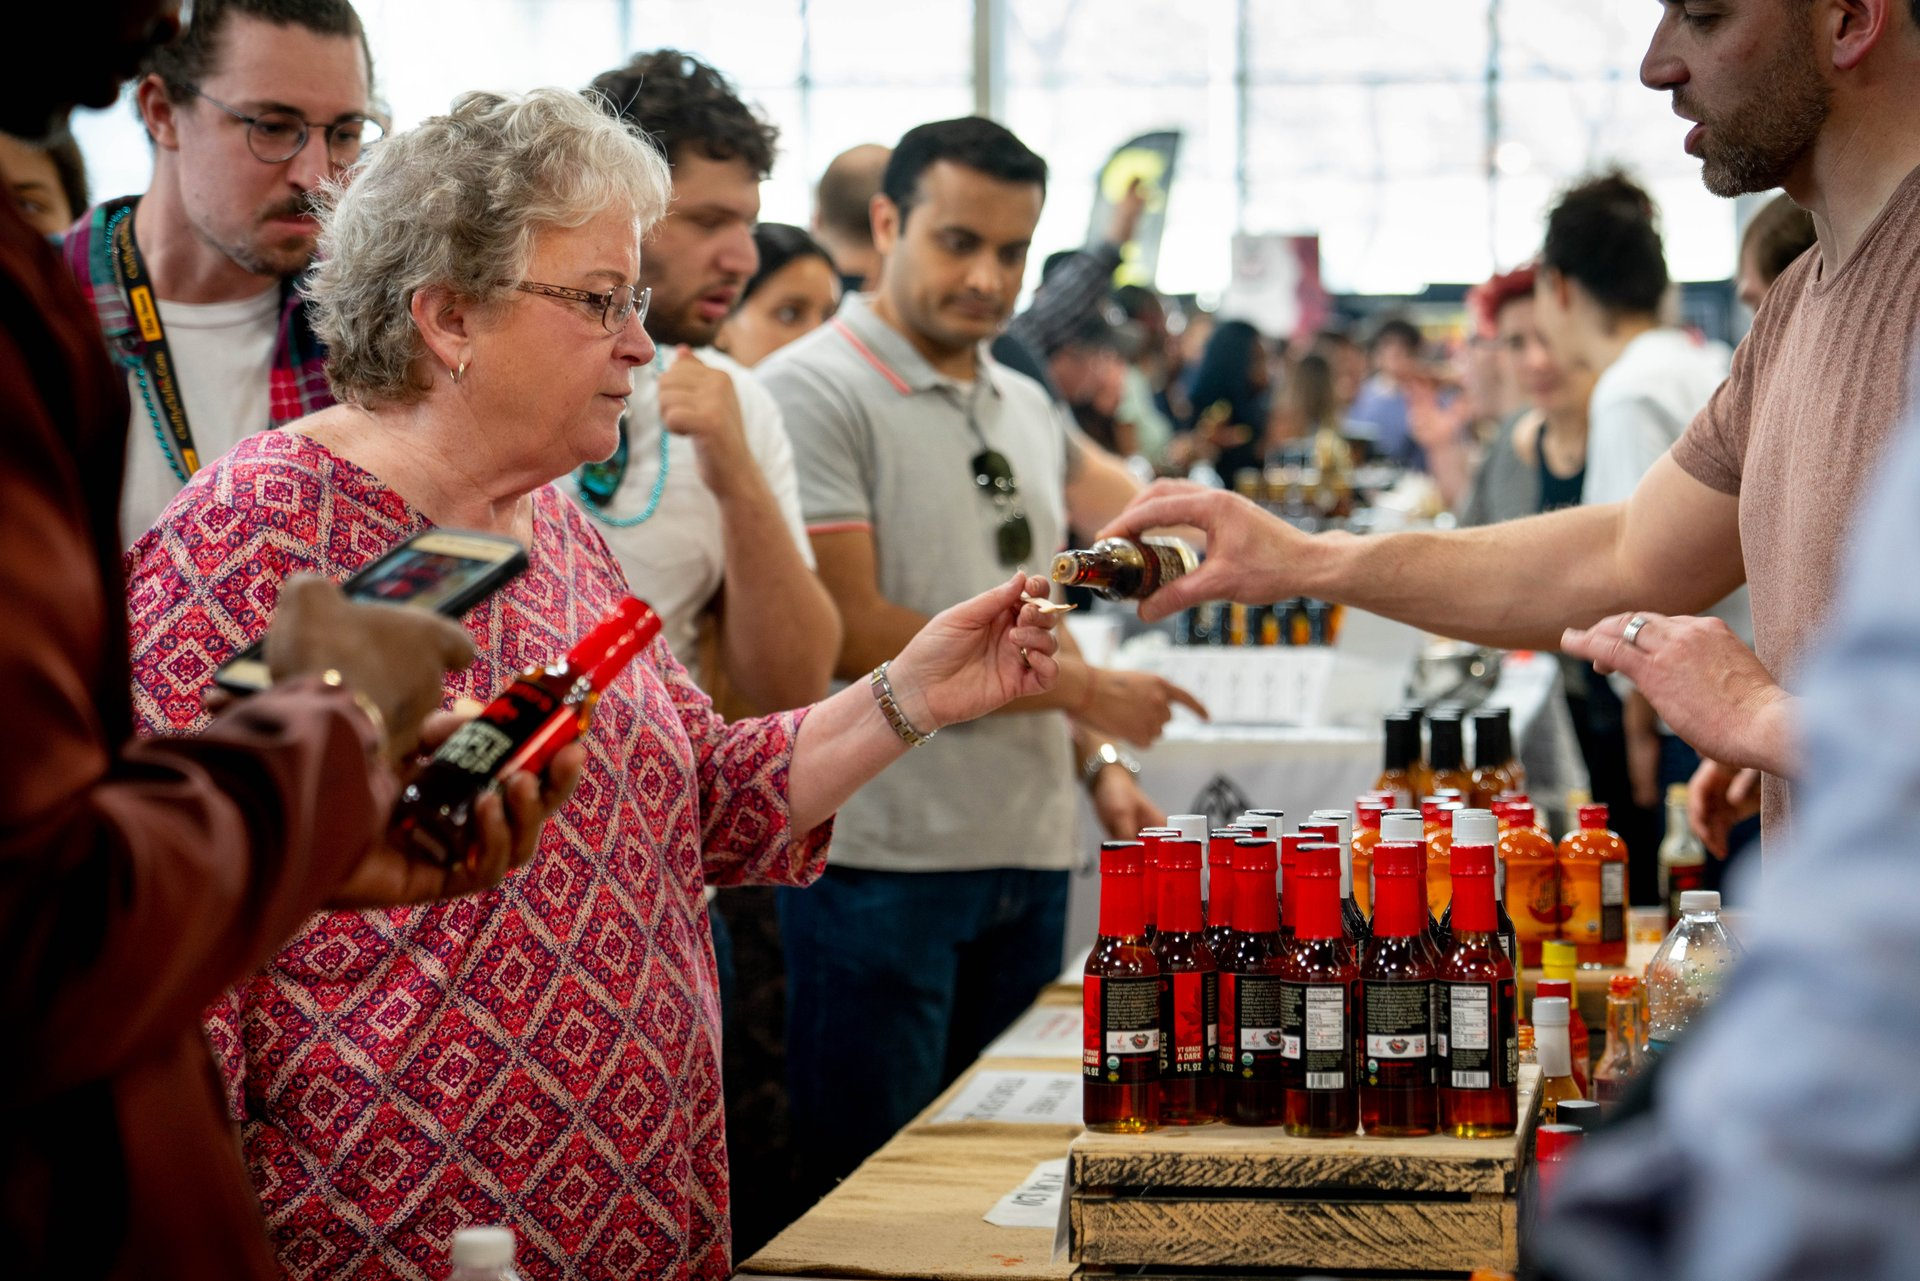 NYC Hot Sauce Expo in New York 2020 - Best Time